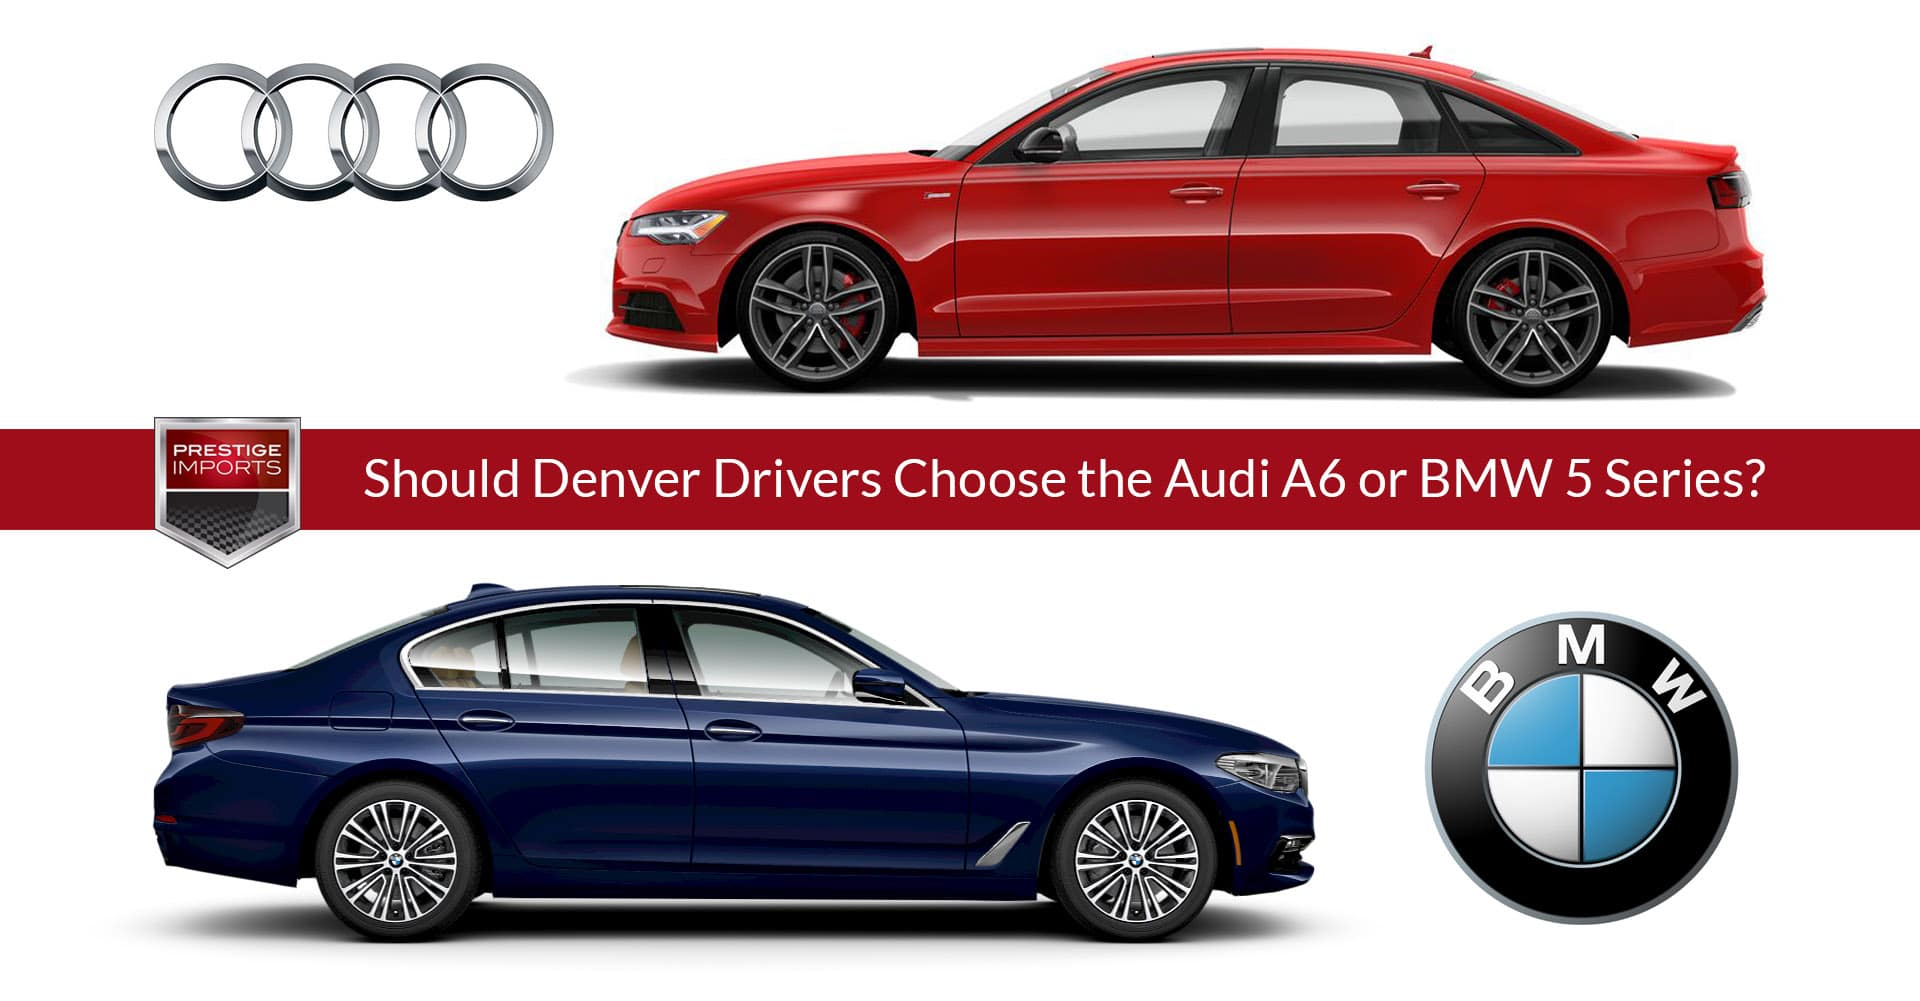 Should Denver Drivers Choose an Audi A6 or BMW 5 Series